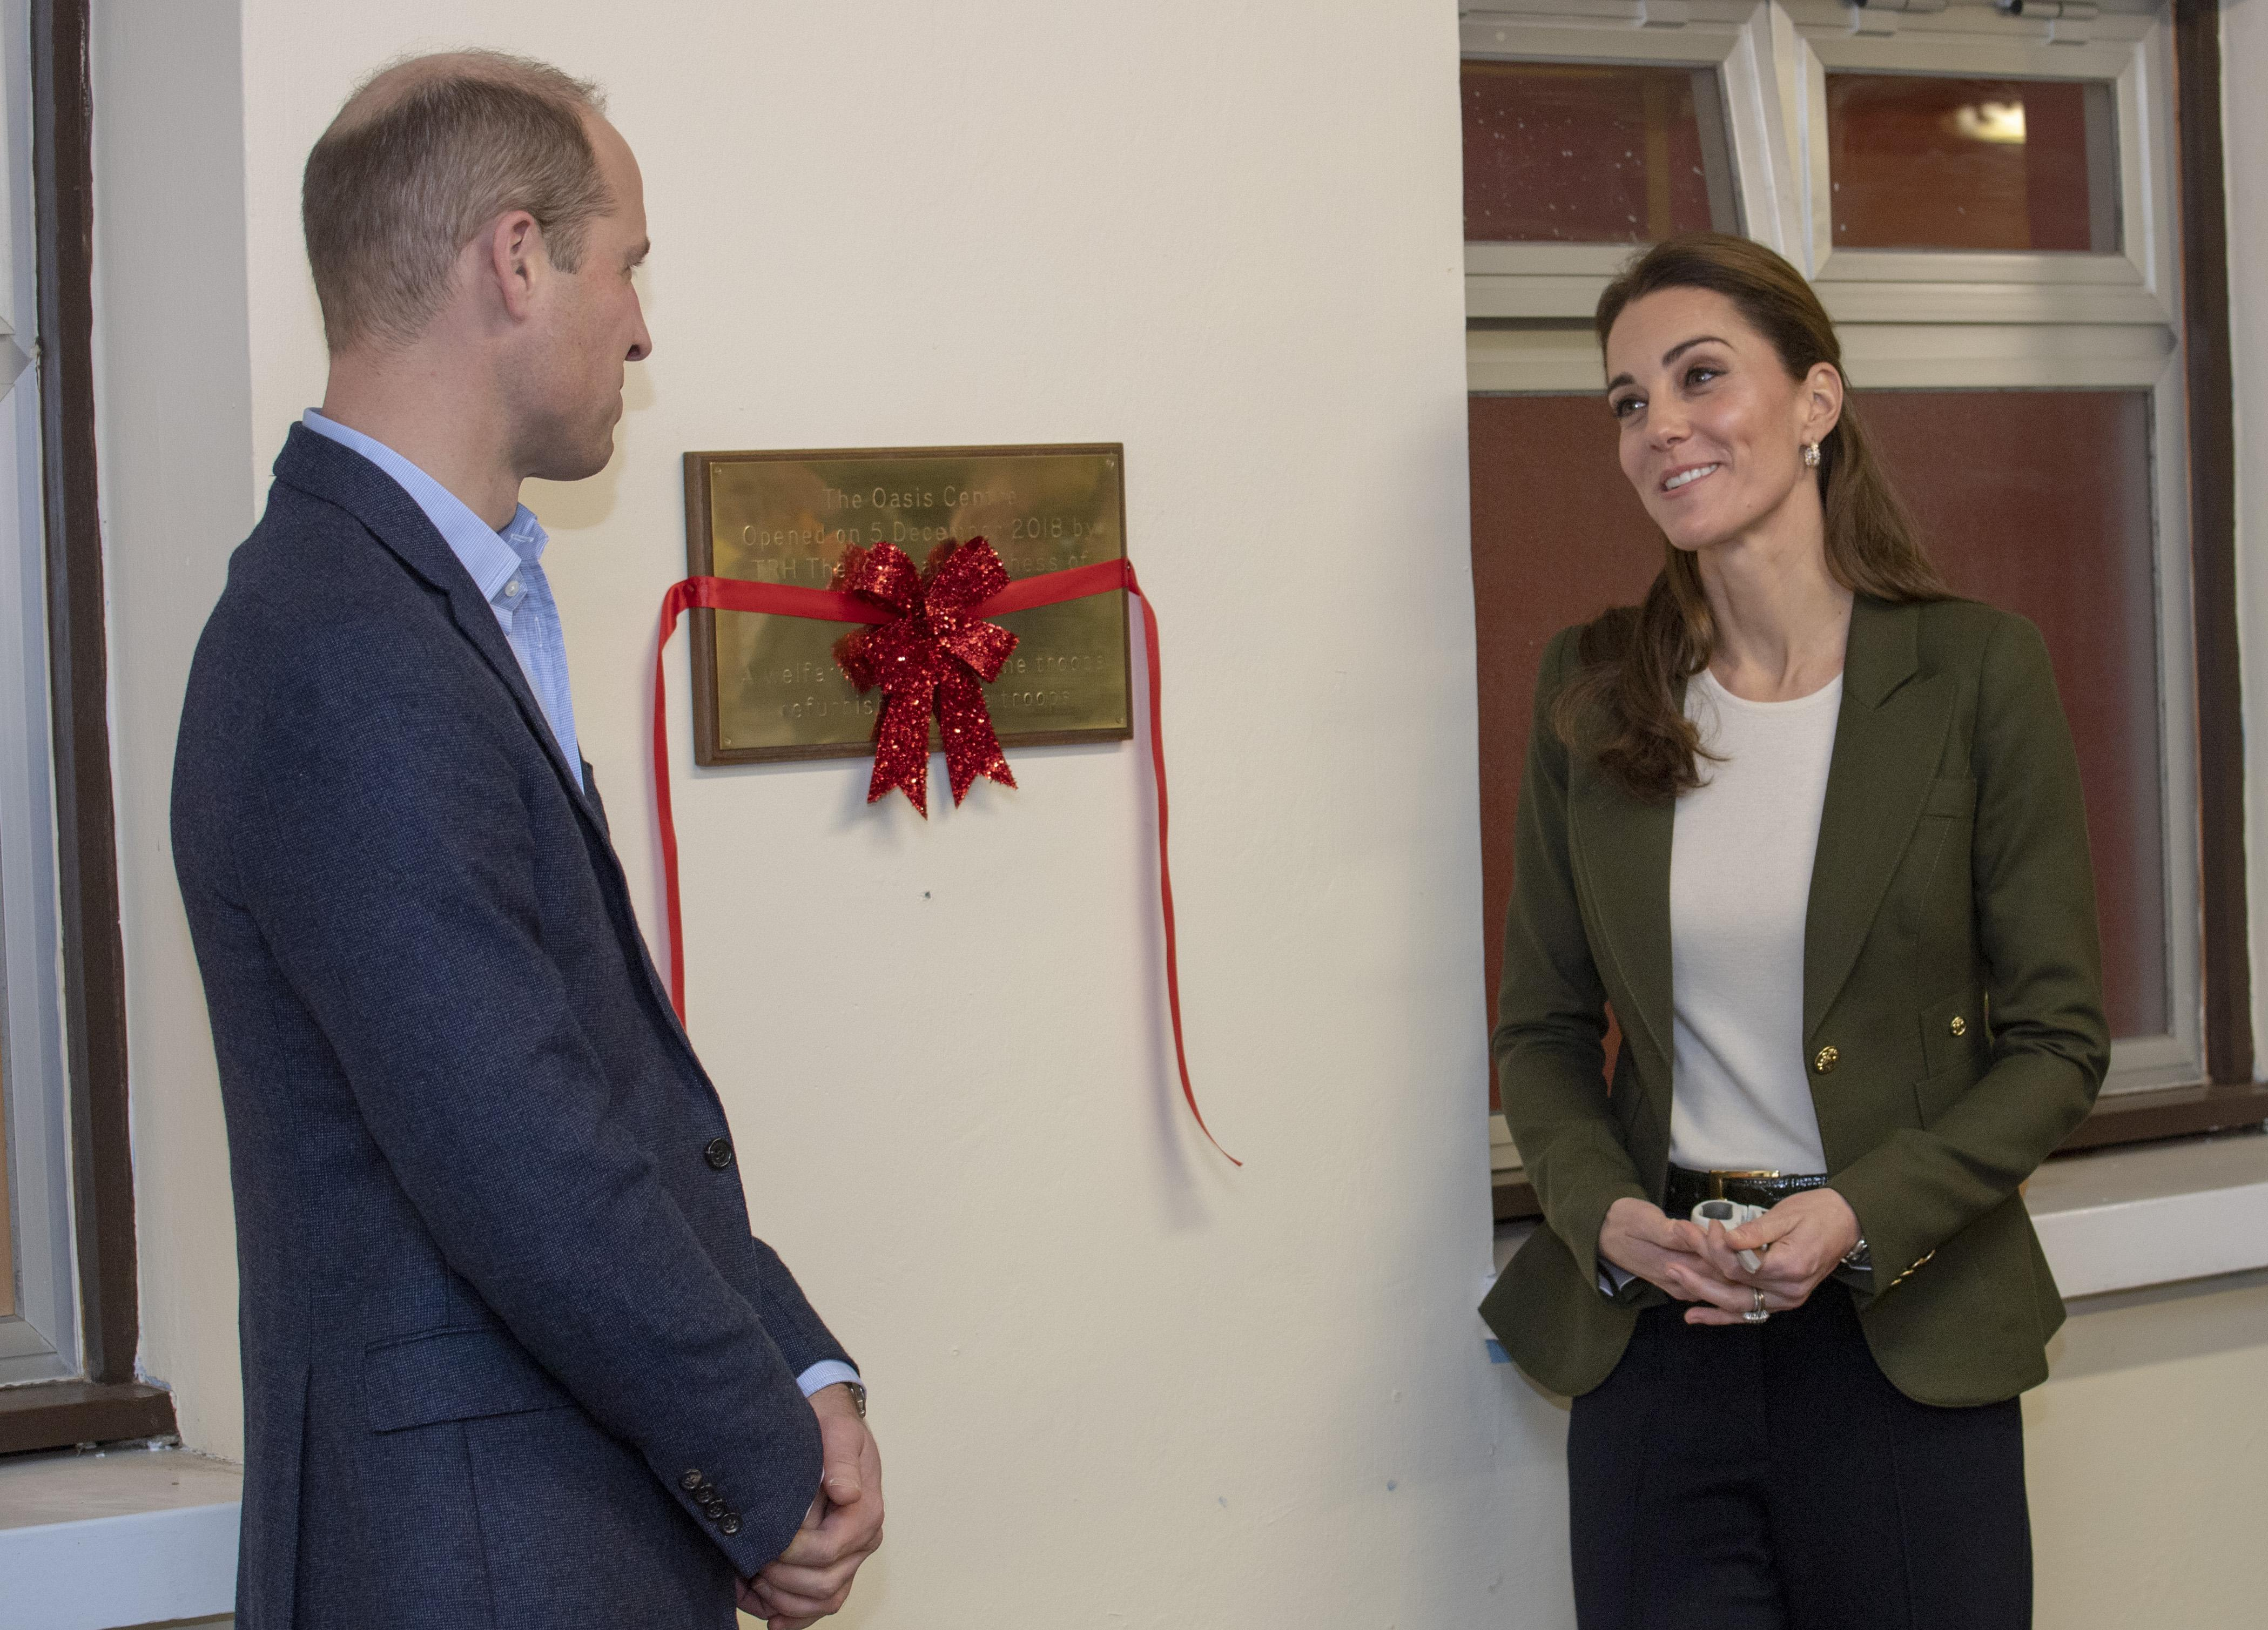 Prince William Kate Middleton Went To This 39 Terrifying 39 Place On Royal Tour